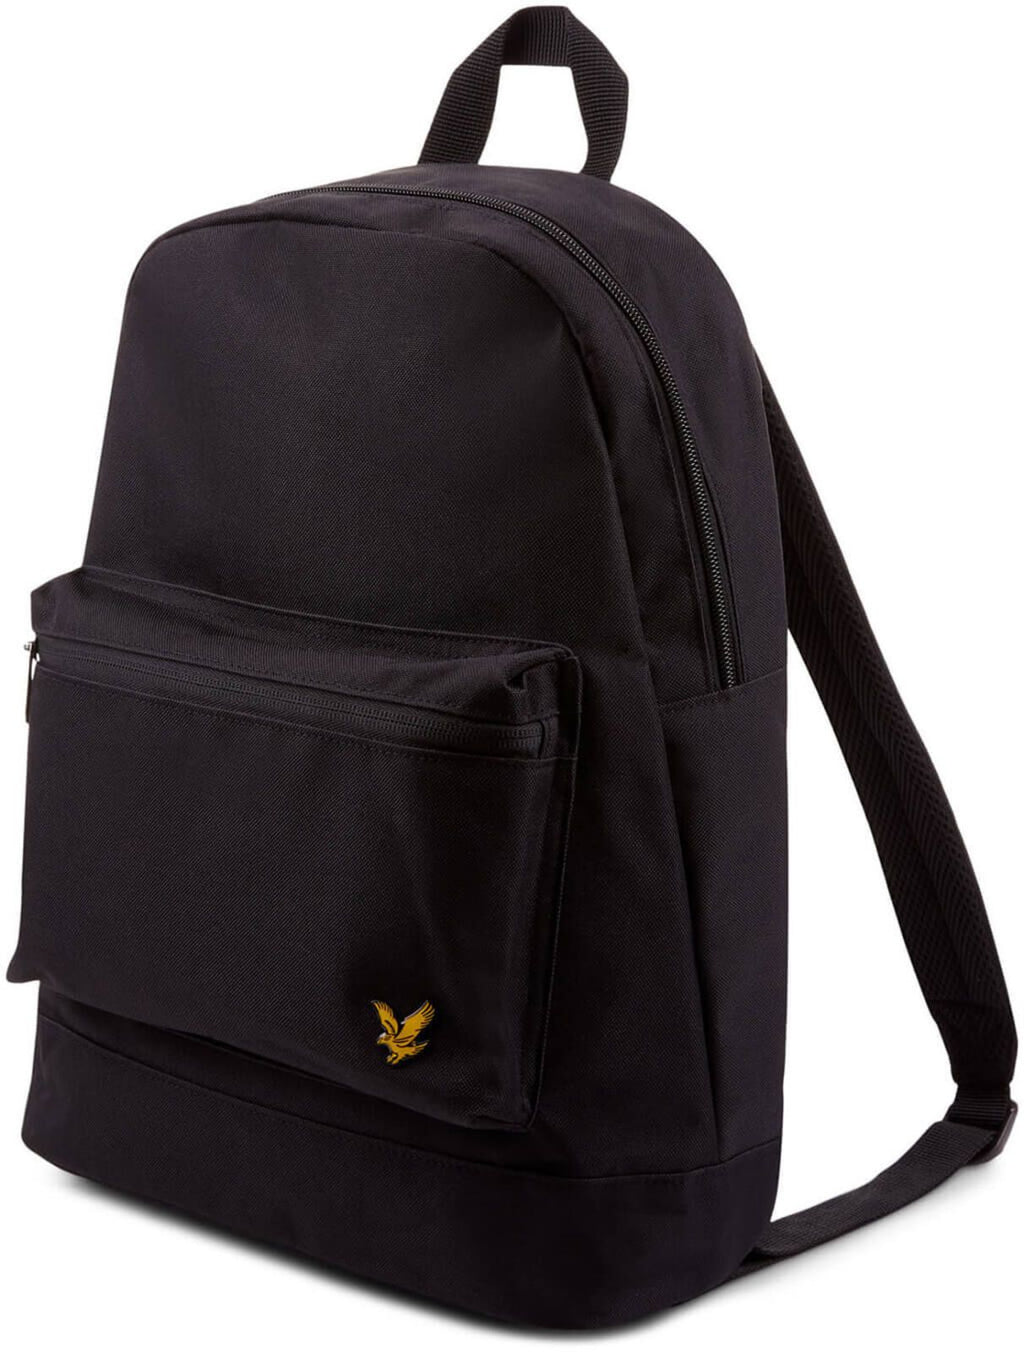 Lyle & Scott Backpack Bag Black